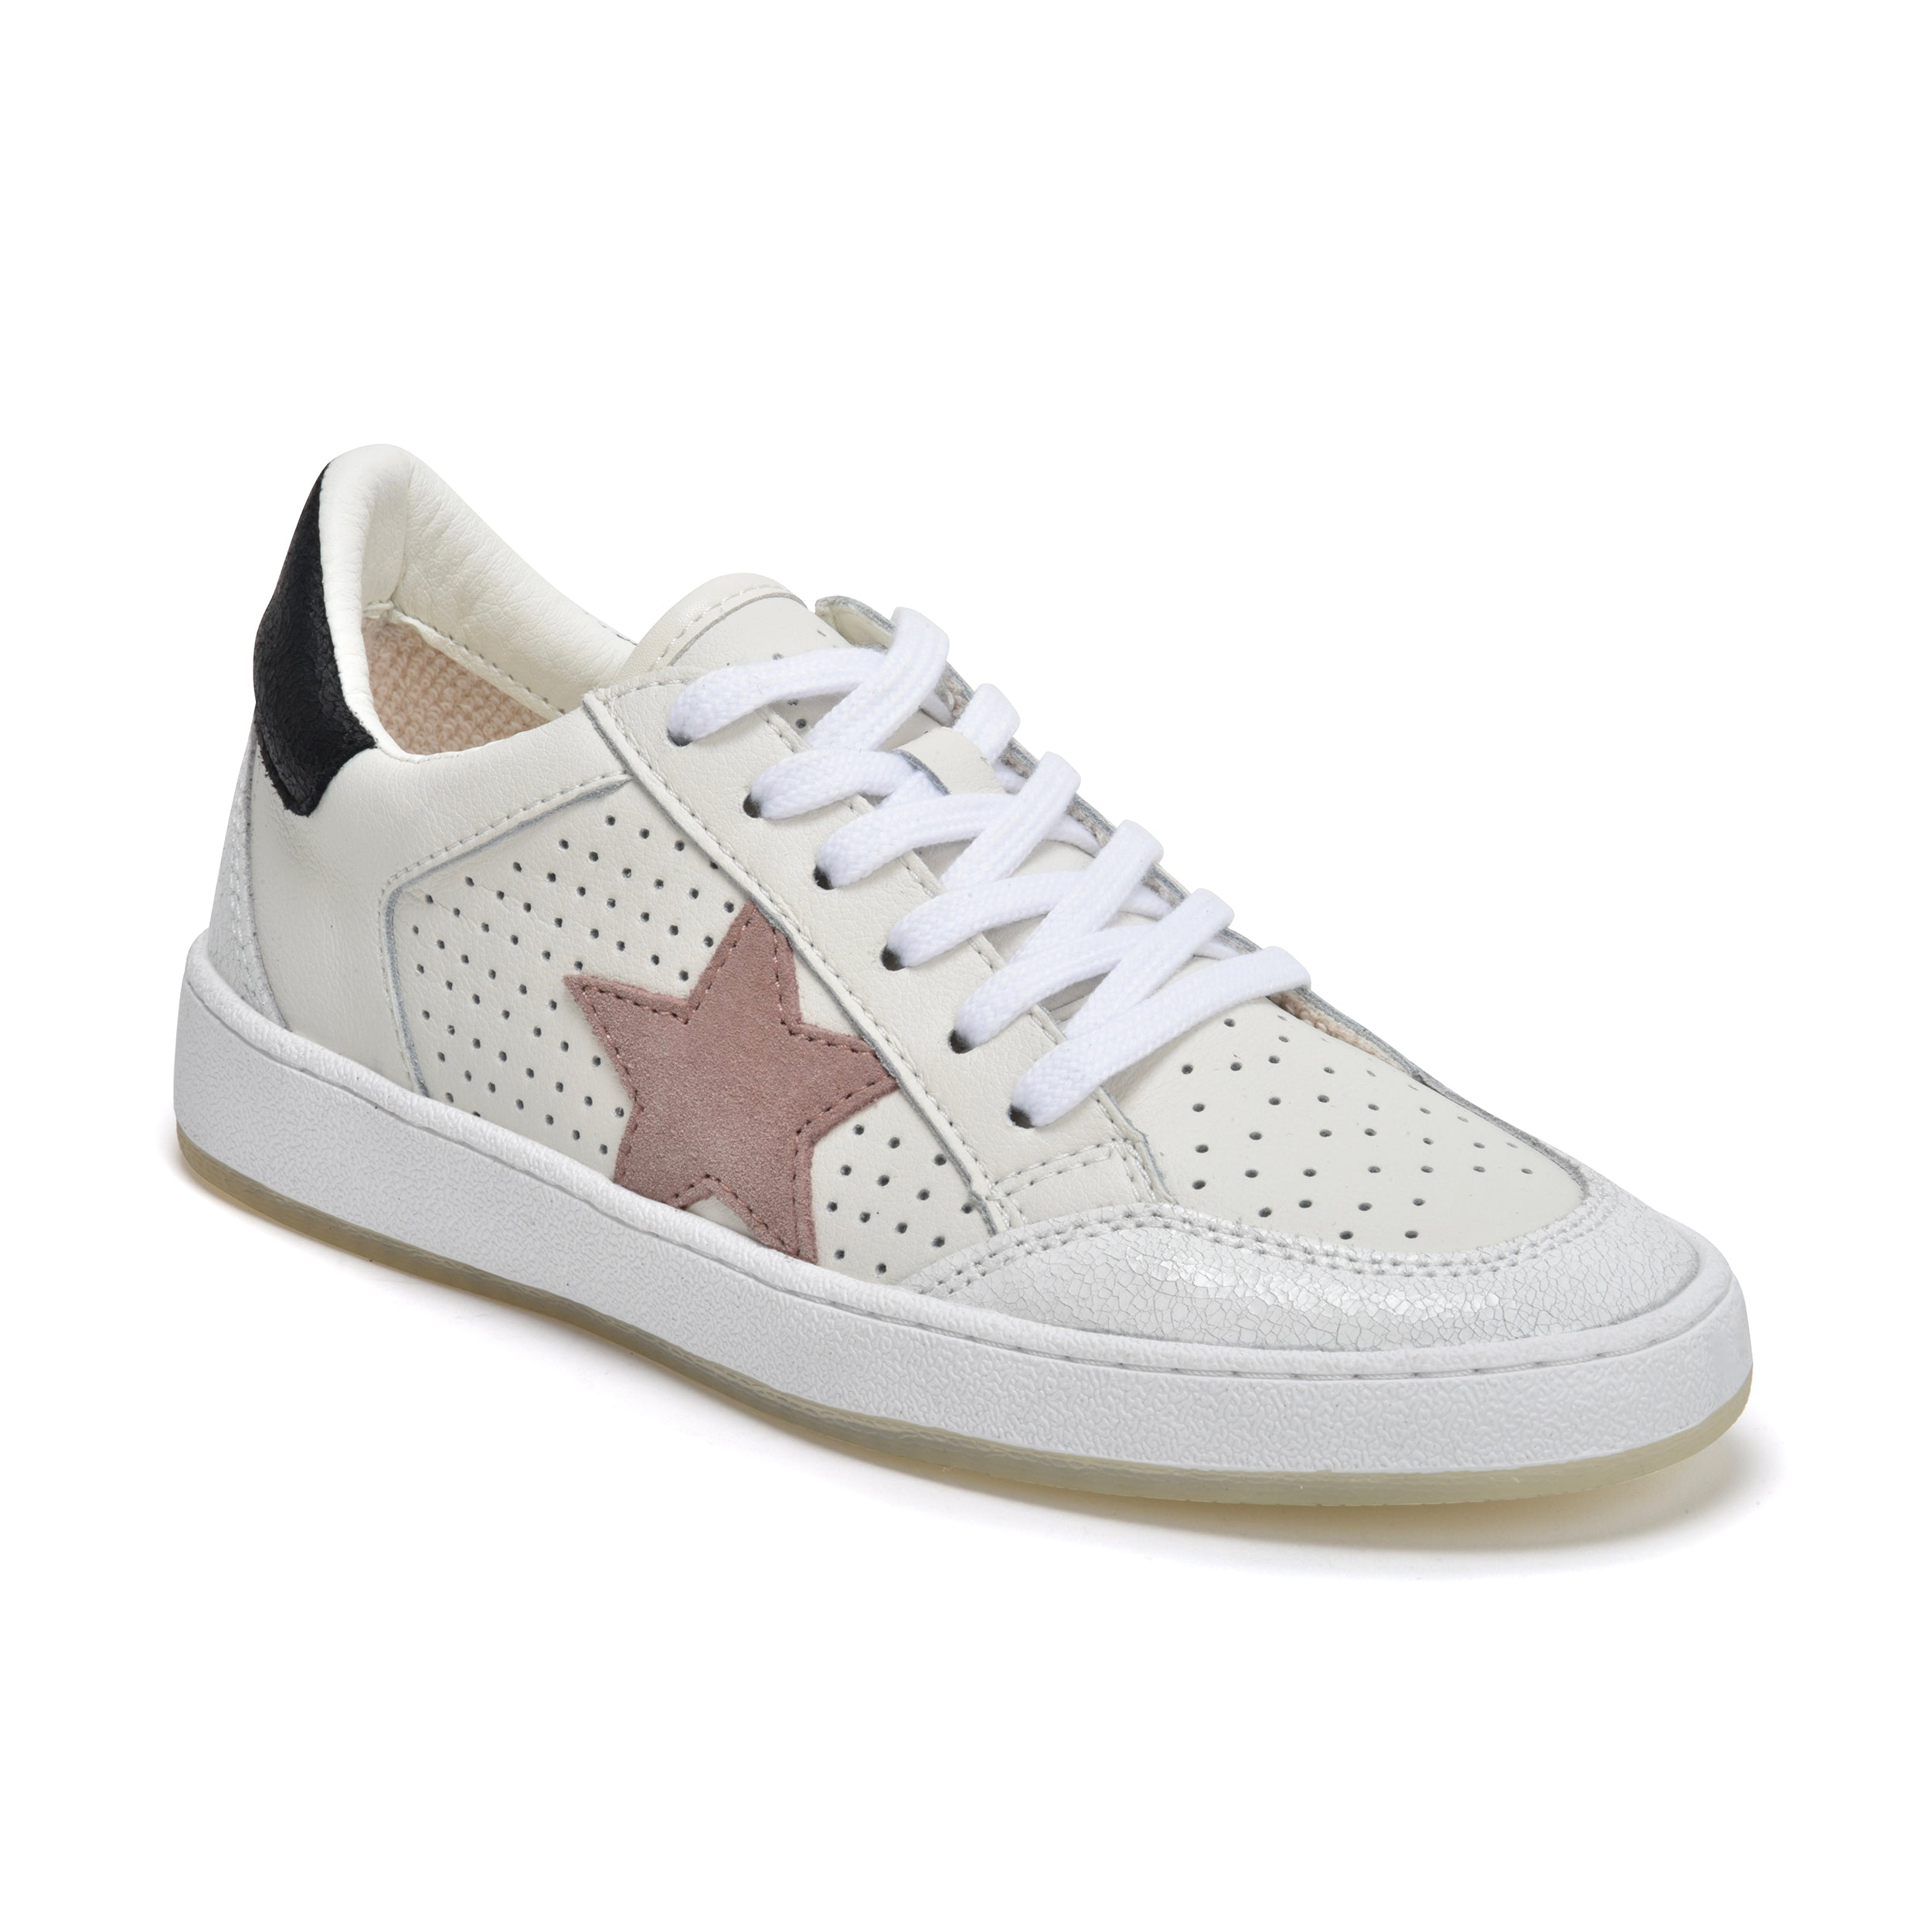 Vintage Havana Ginette - The New Star Perforated Lace Sneaker in White Taupe We are in love with this new low profile perforated fashion forward lace sneaker with taupe suede star. Leather upper, rubber sole, terry cloth lining & padded insole.